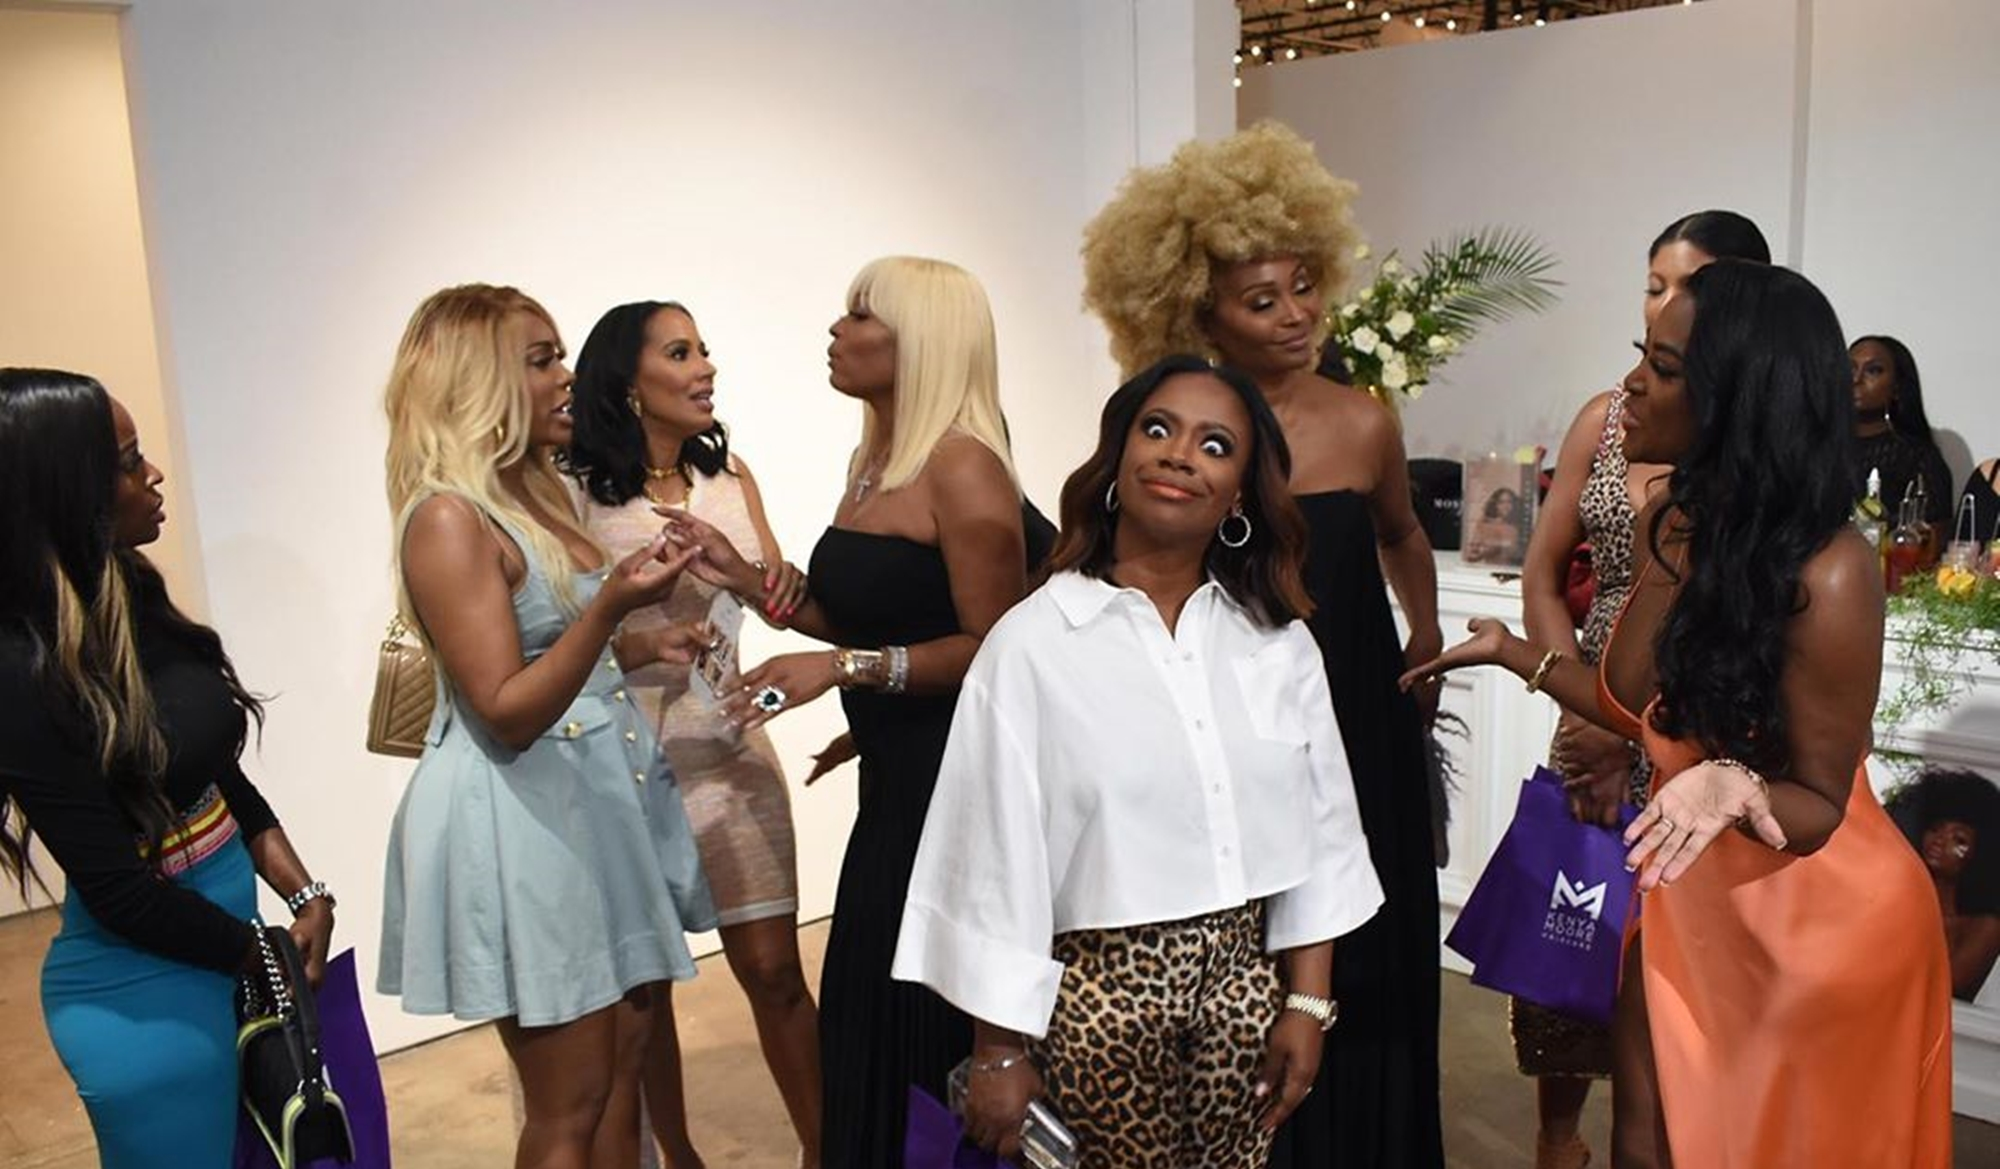 """kandi-burruss-reveals-that-nene-leakes-is-friendless-on-rhoa-will-kenya-moores-return-make-things-worse"""